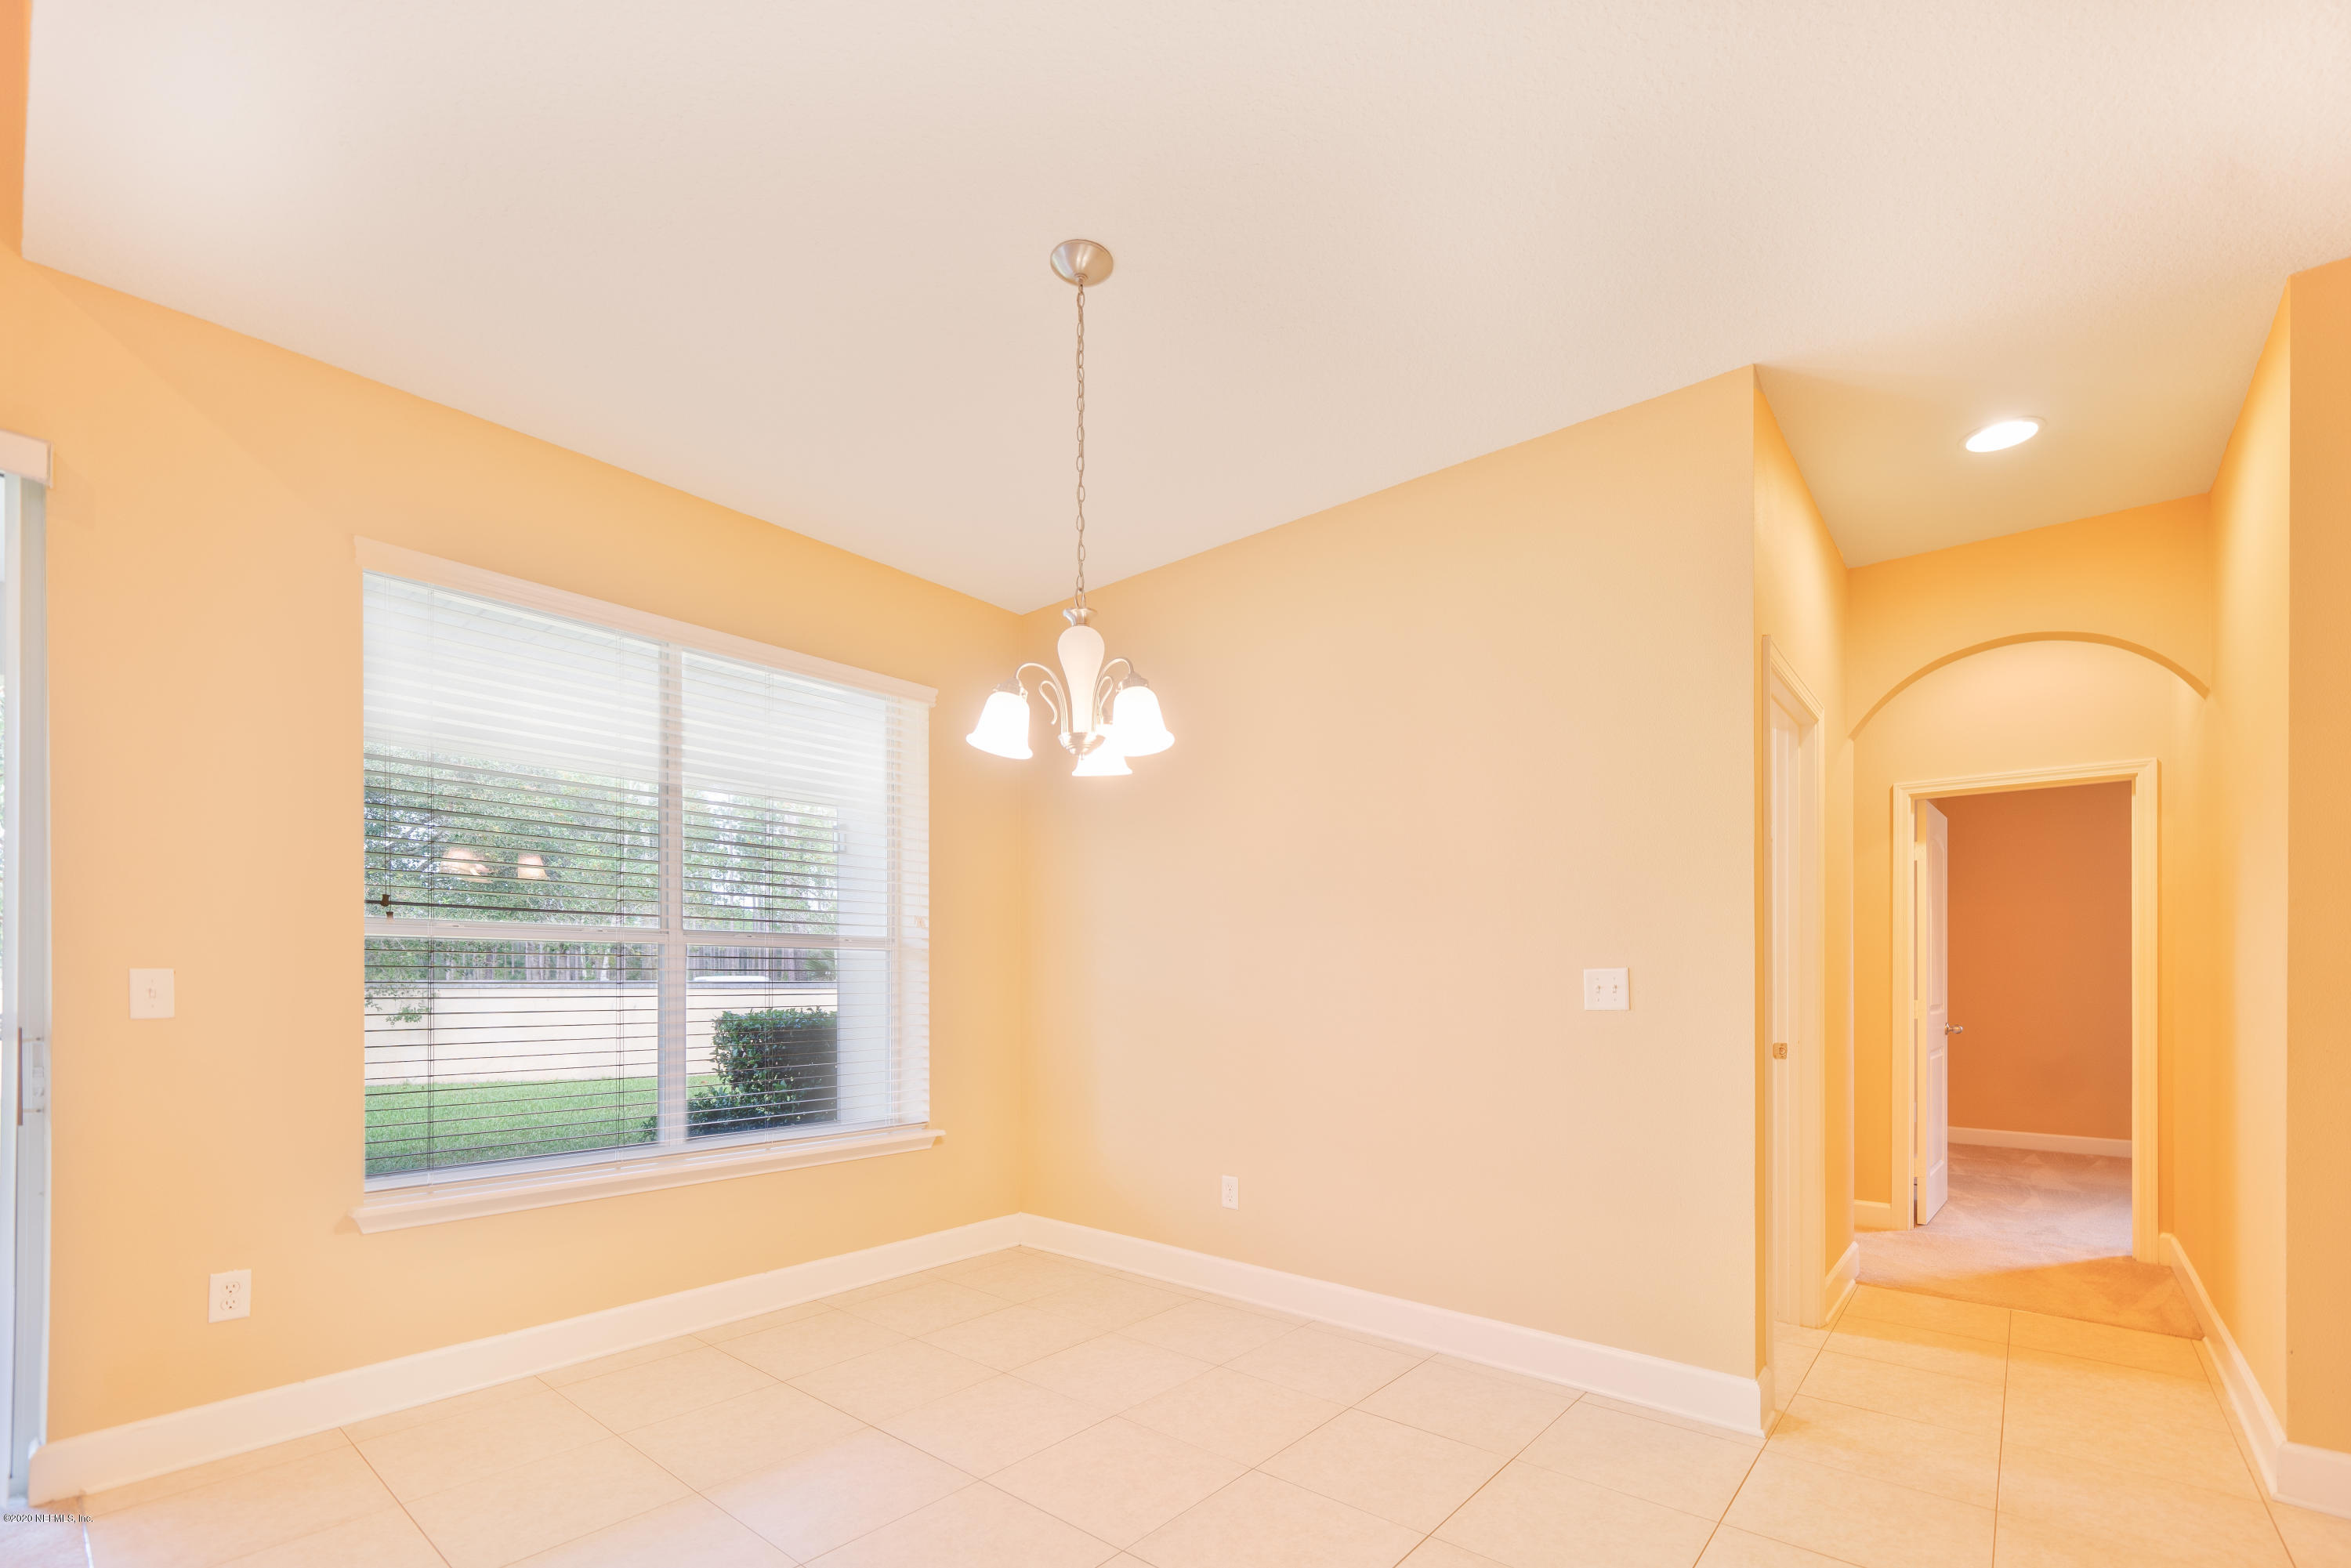 113 ATHERLEY, ST AUGUSTINE, FLORIDA 32092, 3 Bedrooms Bedrooms, ,3 BathroomsBathrooms,Residential,For sale,ATHERLEY,1081731